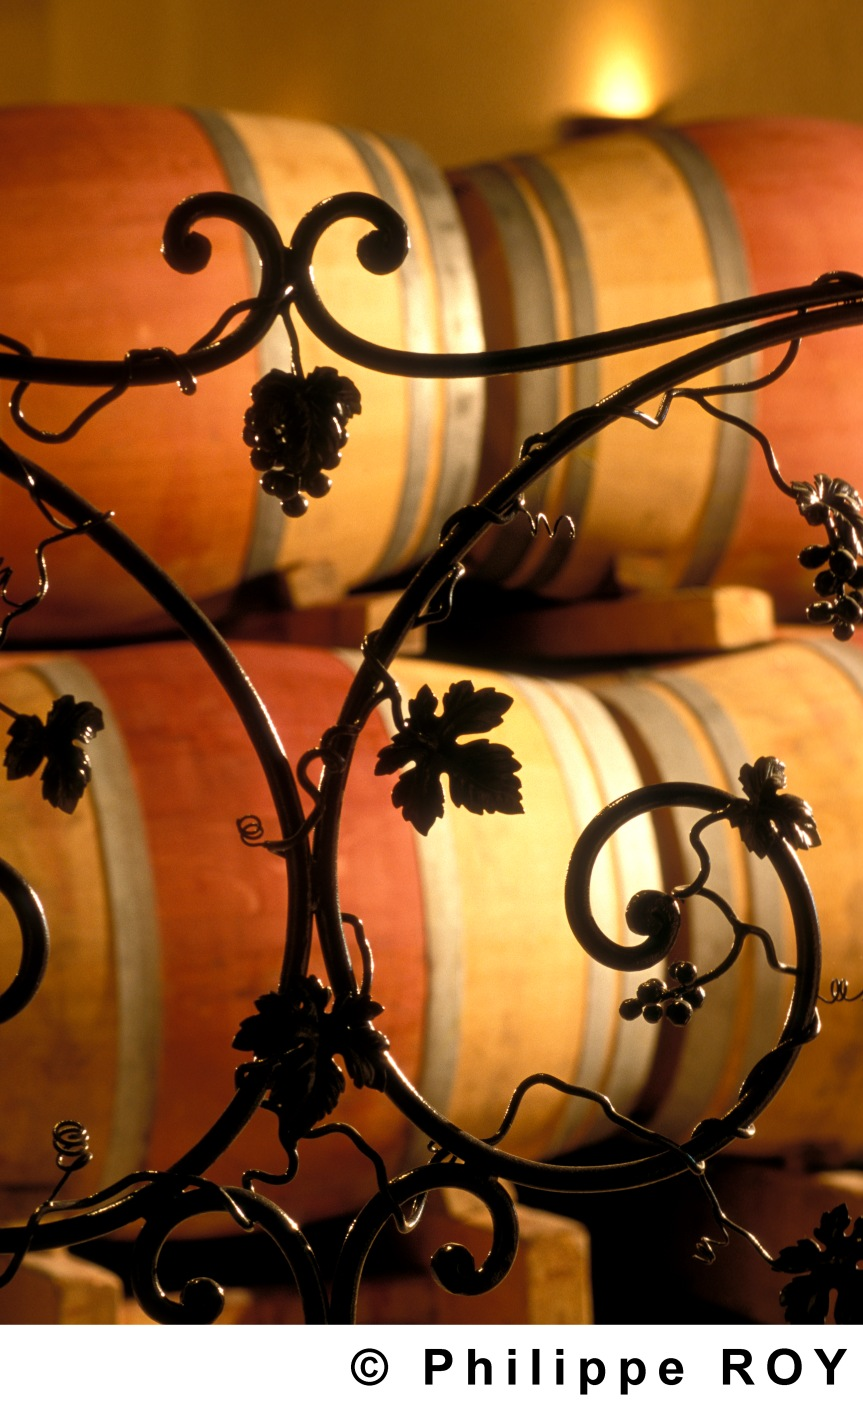 Get to know which are your favorite Grand Cru Bordeaux without breaking the bank